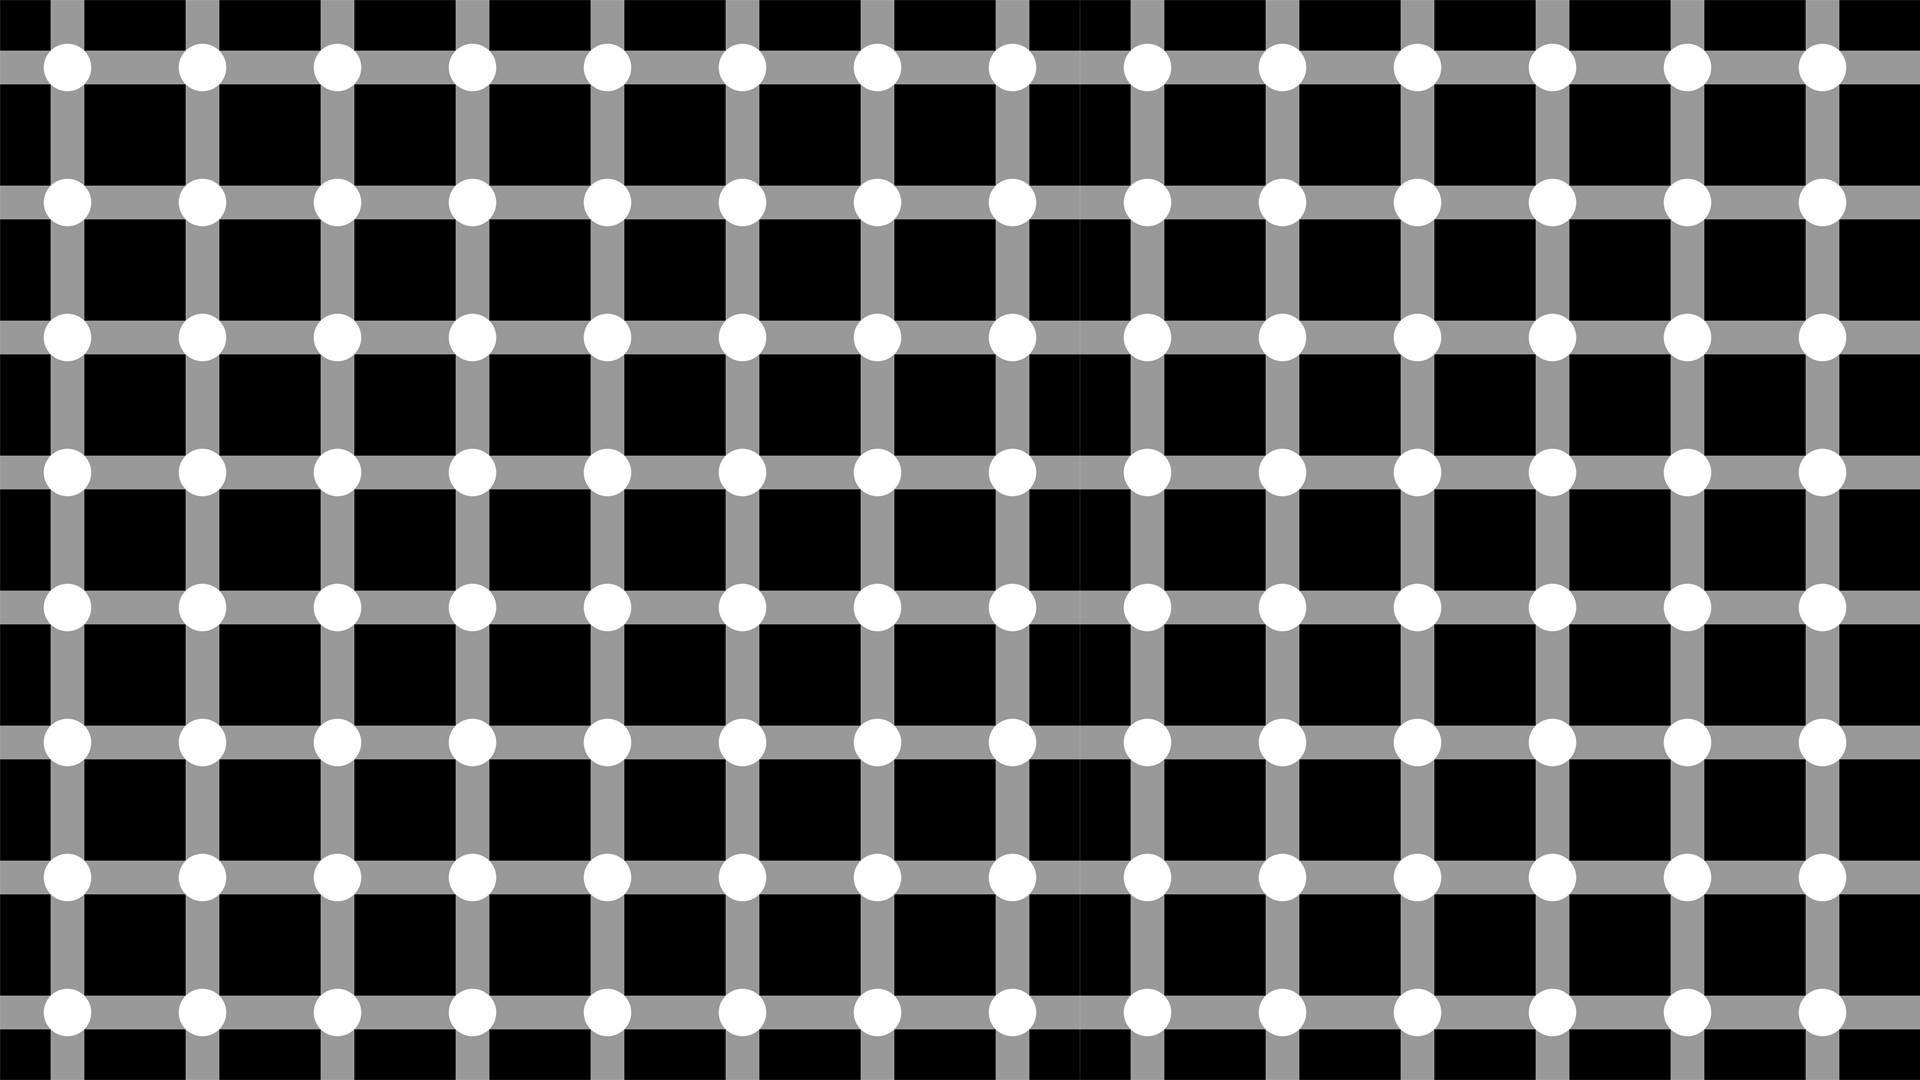 Pics photos wallpapers optical illusion desktop backgrounds optical - Moving Optical Illusion Pattern Viewing Gallery